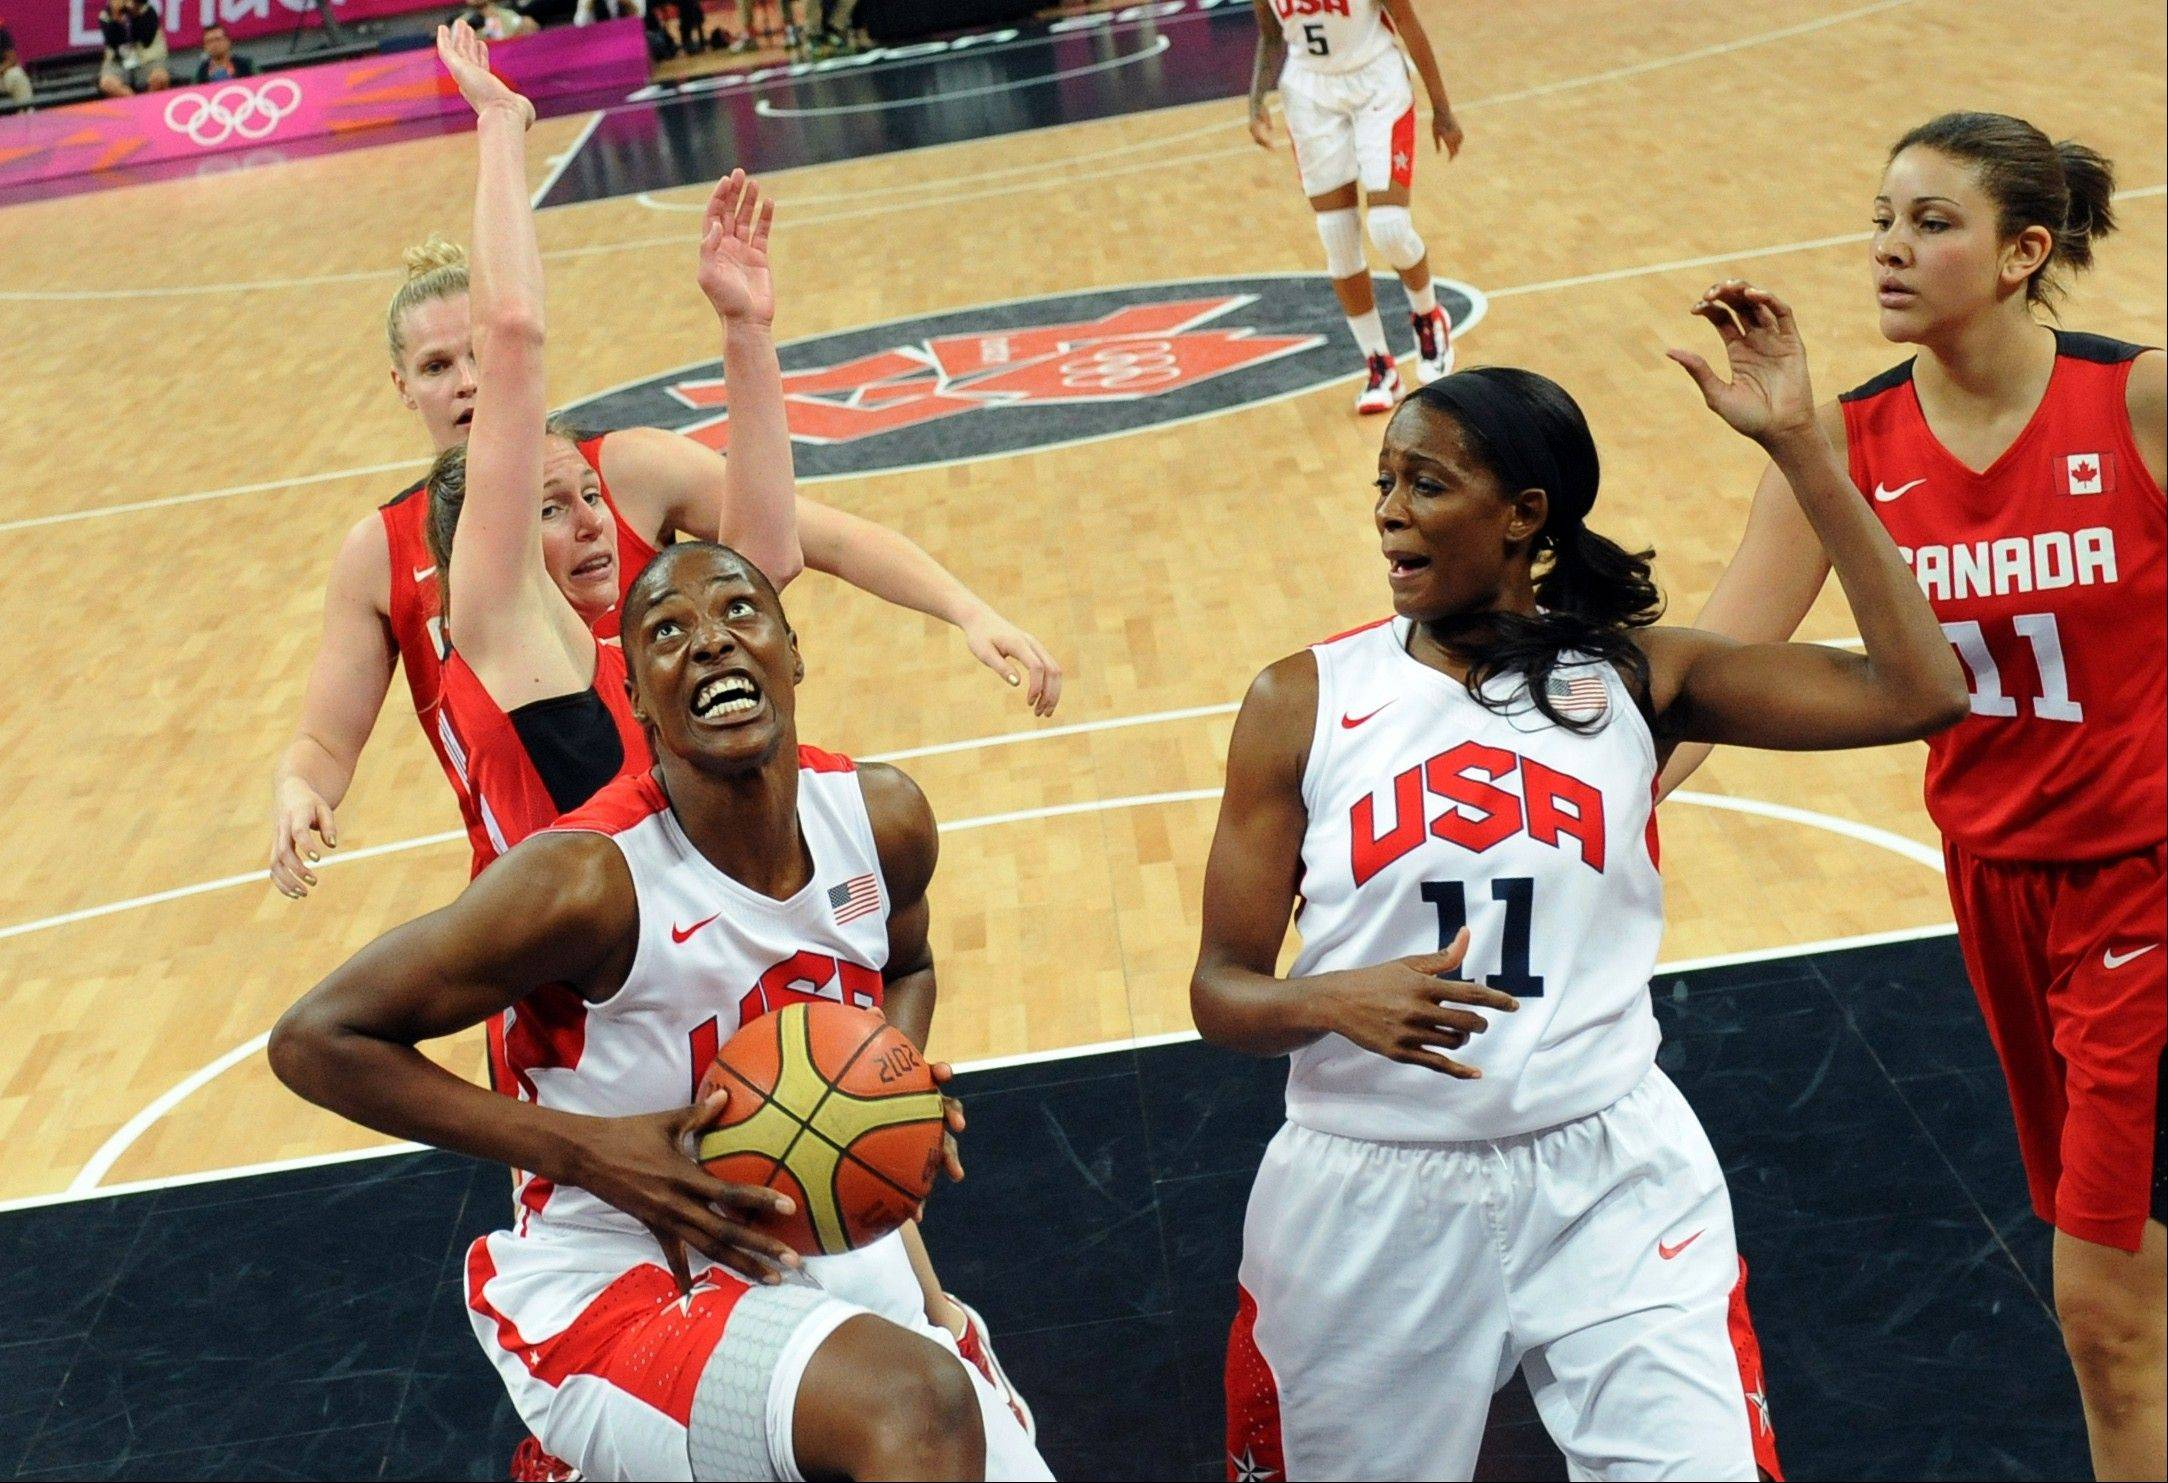 United States' center Sylvia Fowles, left, goes for a basket during a women's quarterfinal basketball match against Canada at the 2012 Summer Olympics on Tuesday, Aug. 7, 2012, in London. (AP Photo/Mark Ralston, Pool)